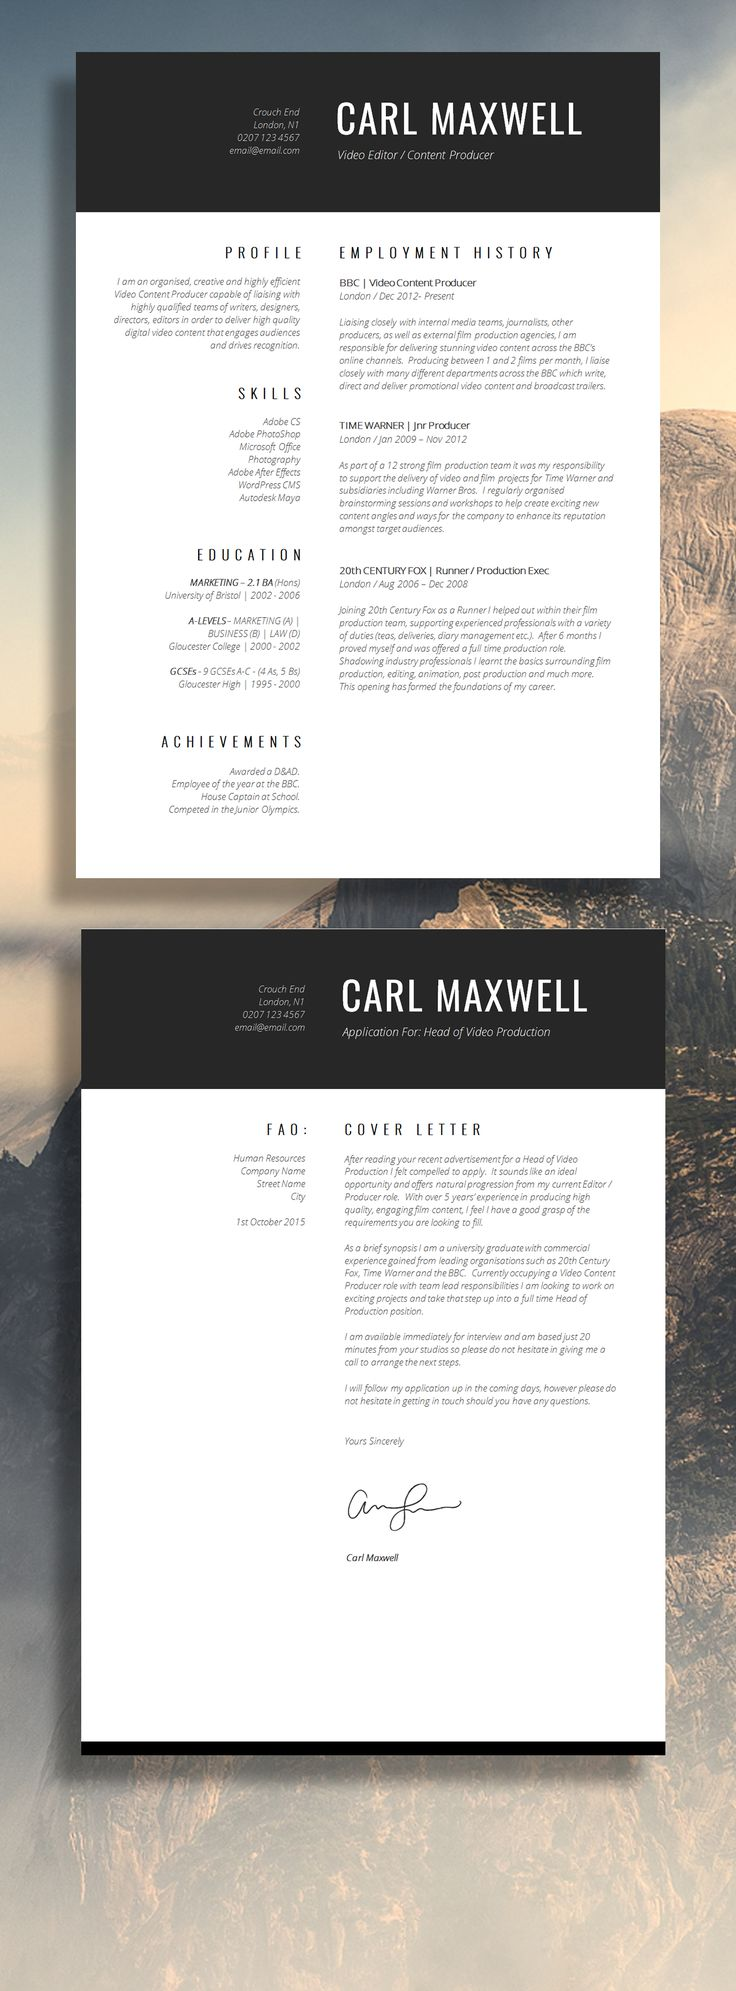 best images about resume design layouts professional resume template cv template resume advice cover letter word mac or pc instant digital fair